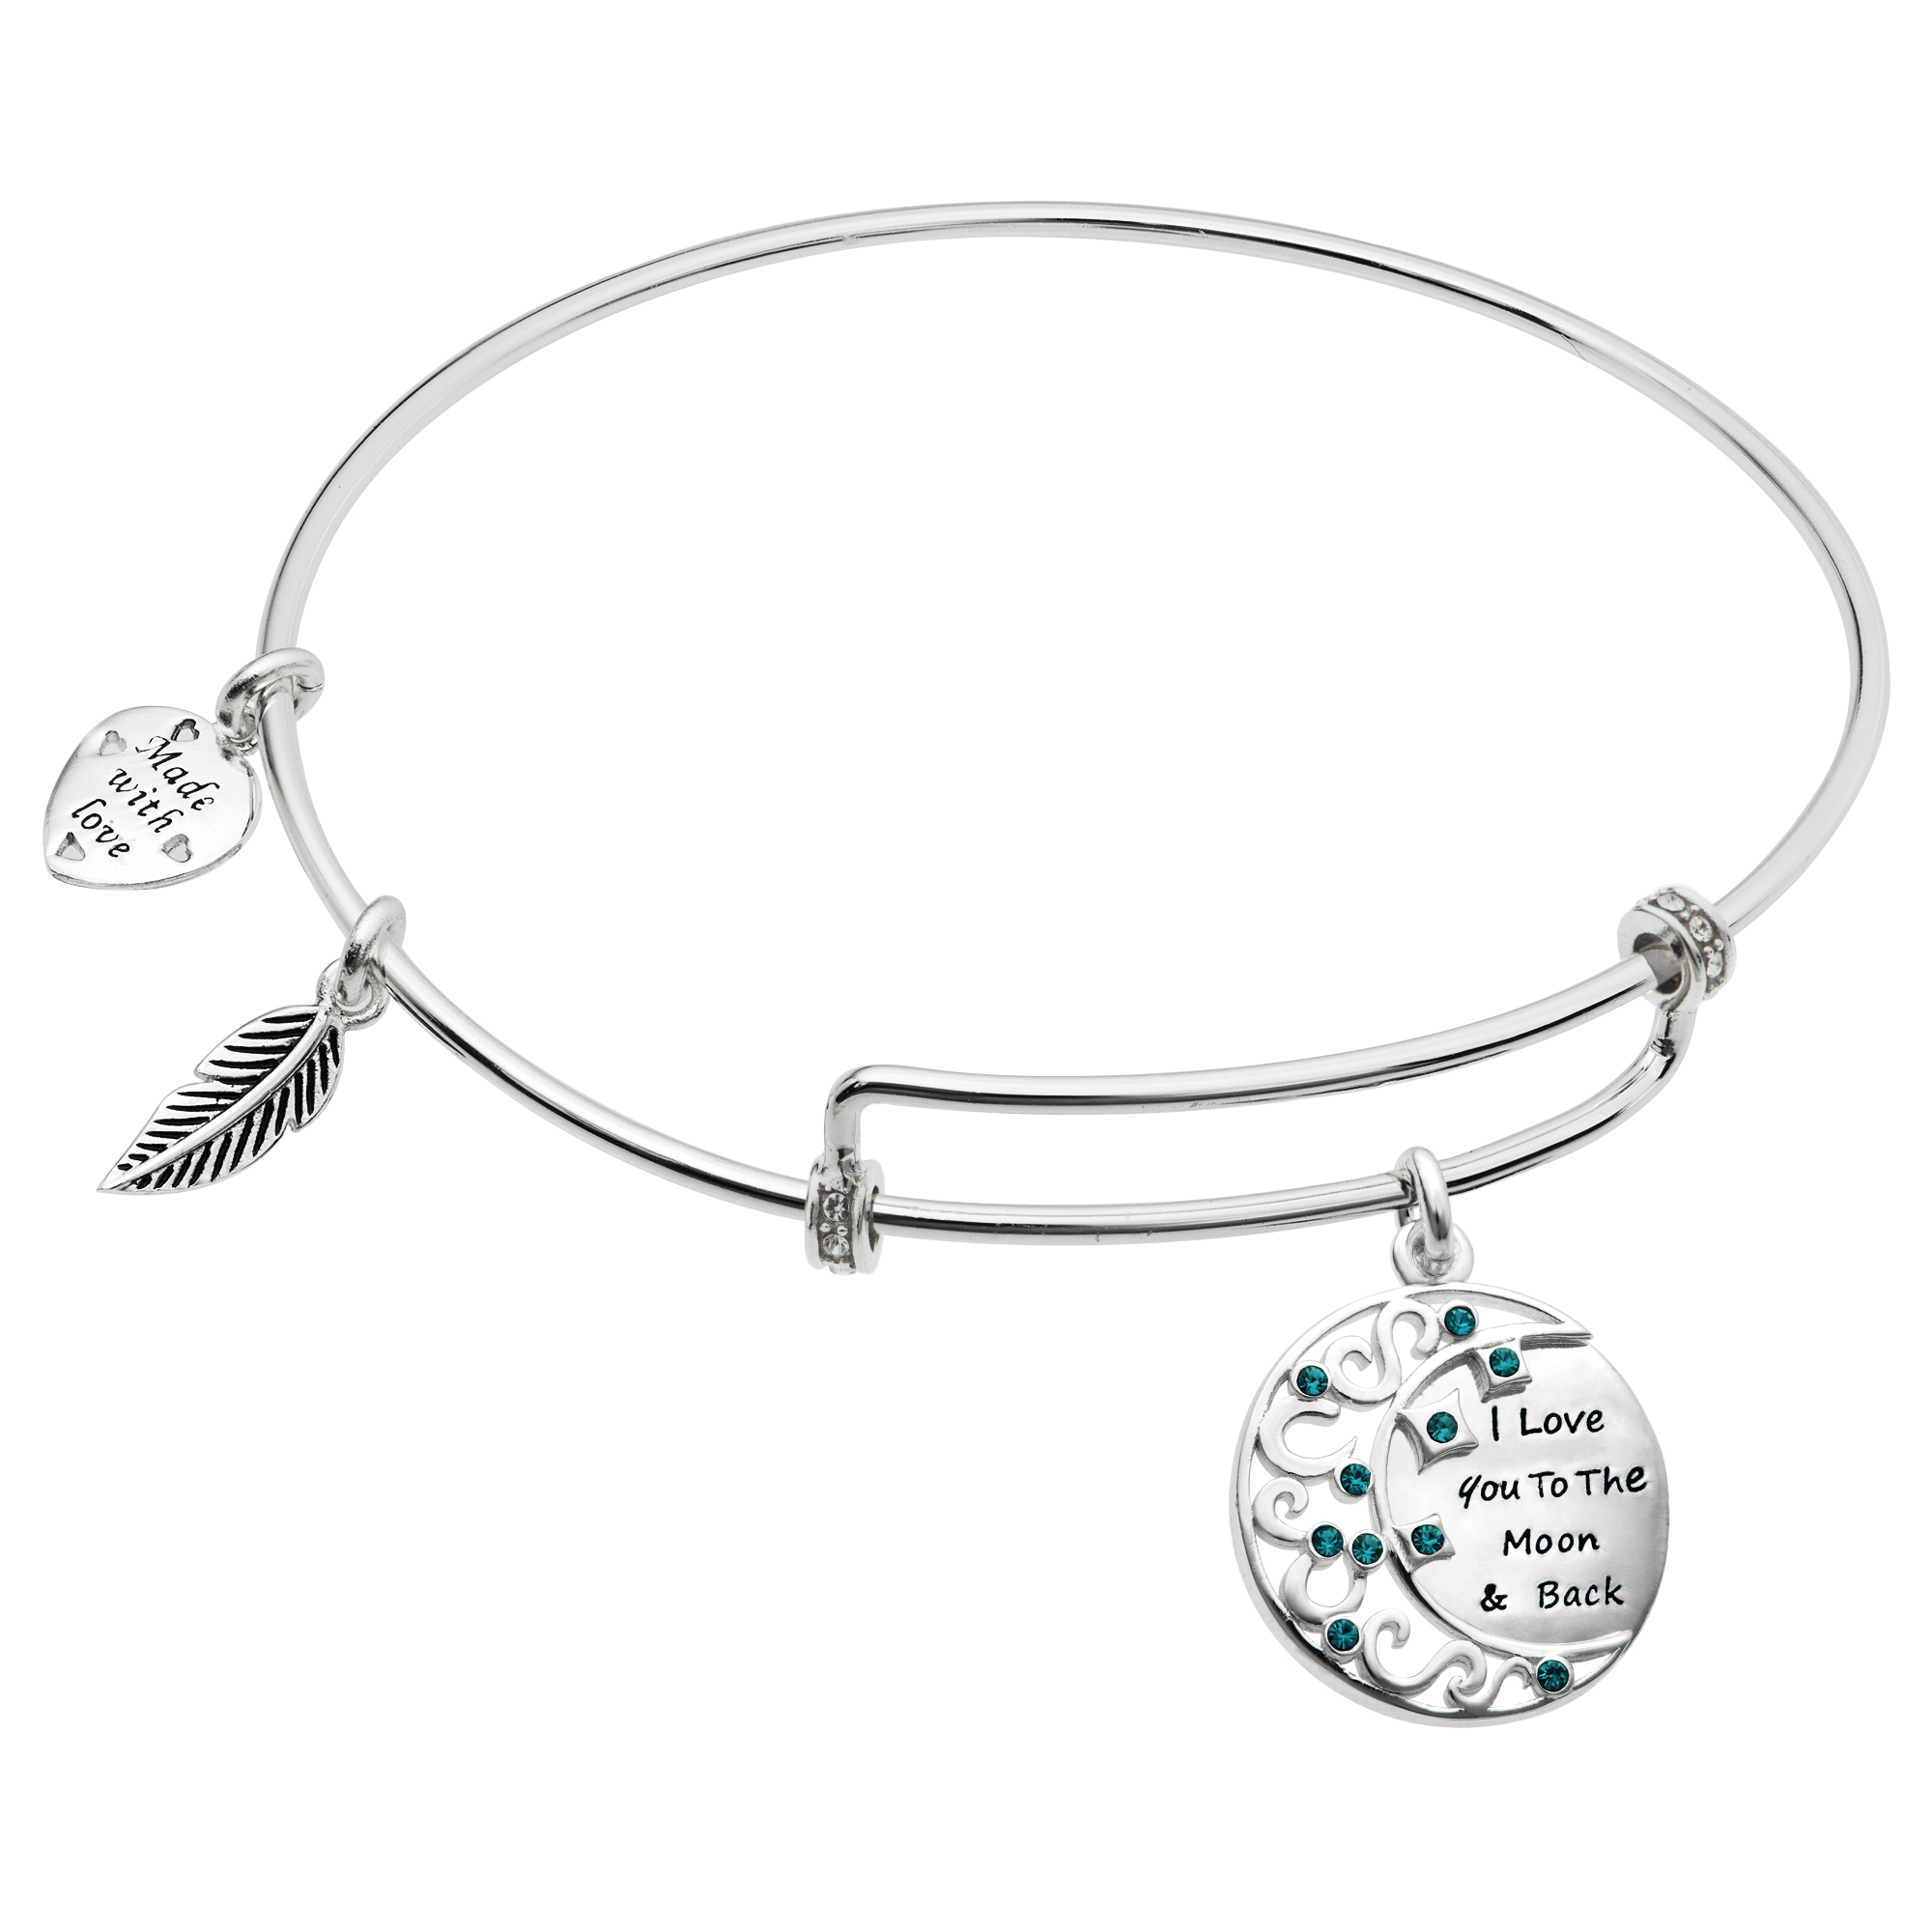 Rhodium on 925 Sterling Silver I Love You to the Moon and Back CZ Charm Adjustable Wire Bangle Bracelet